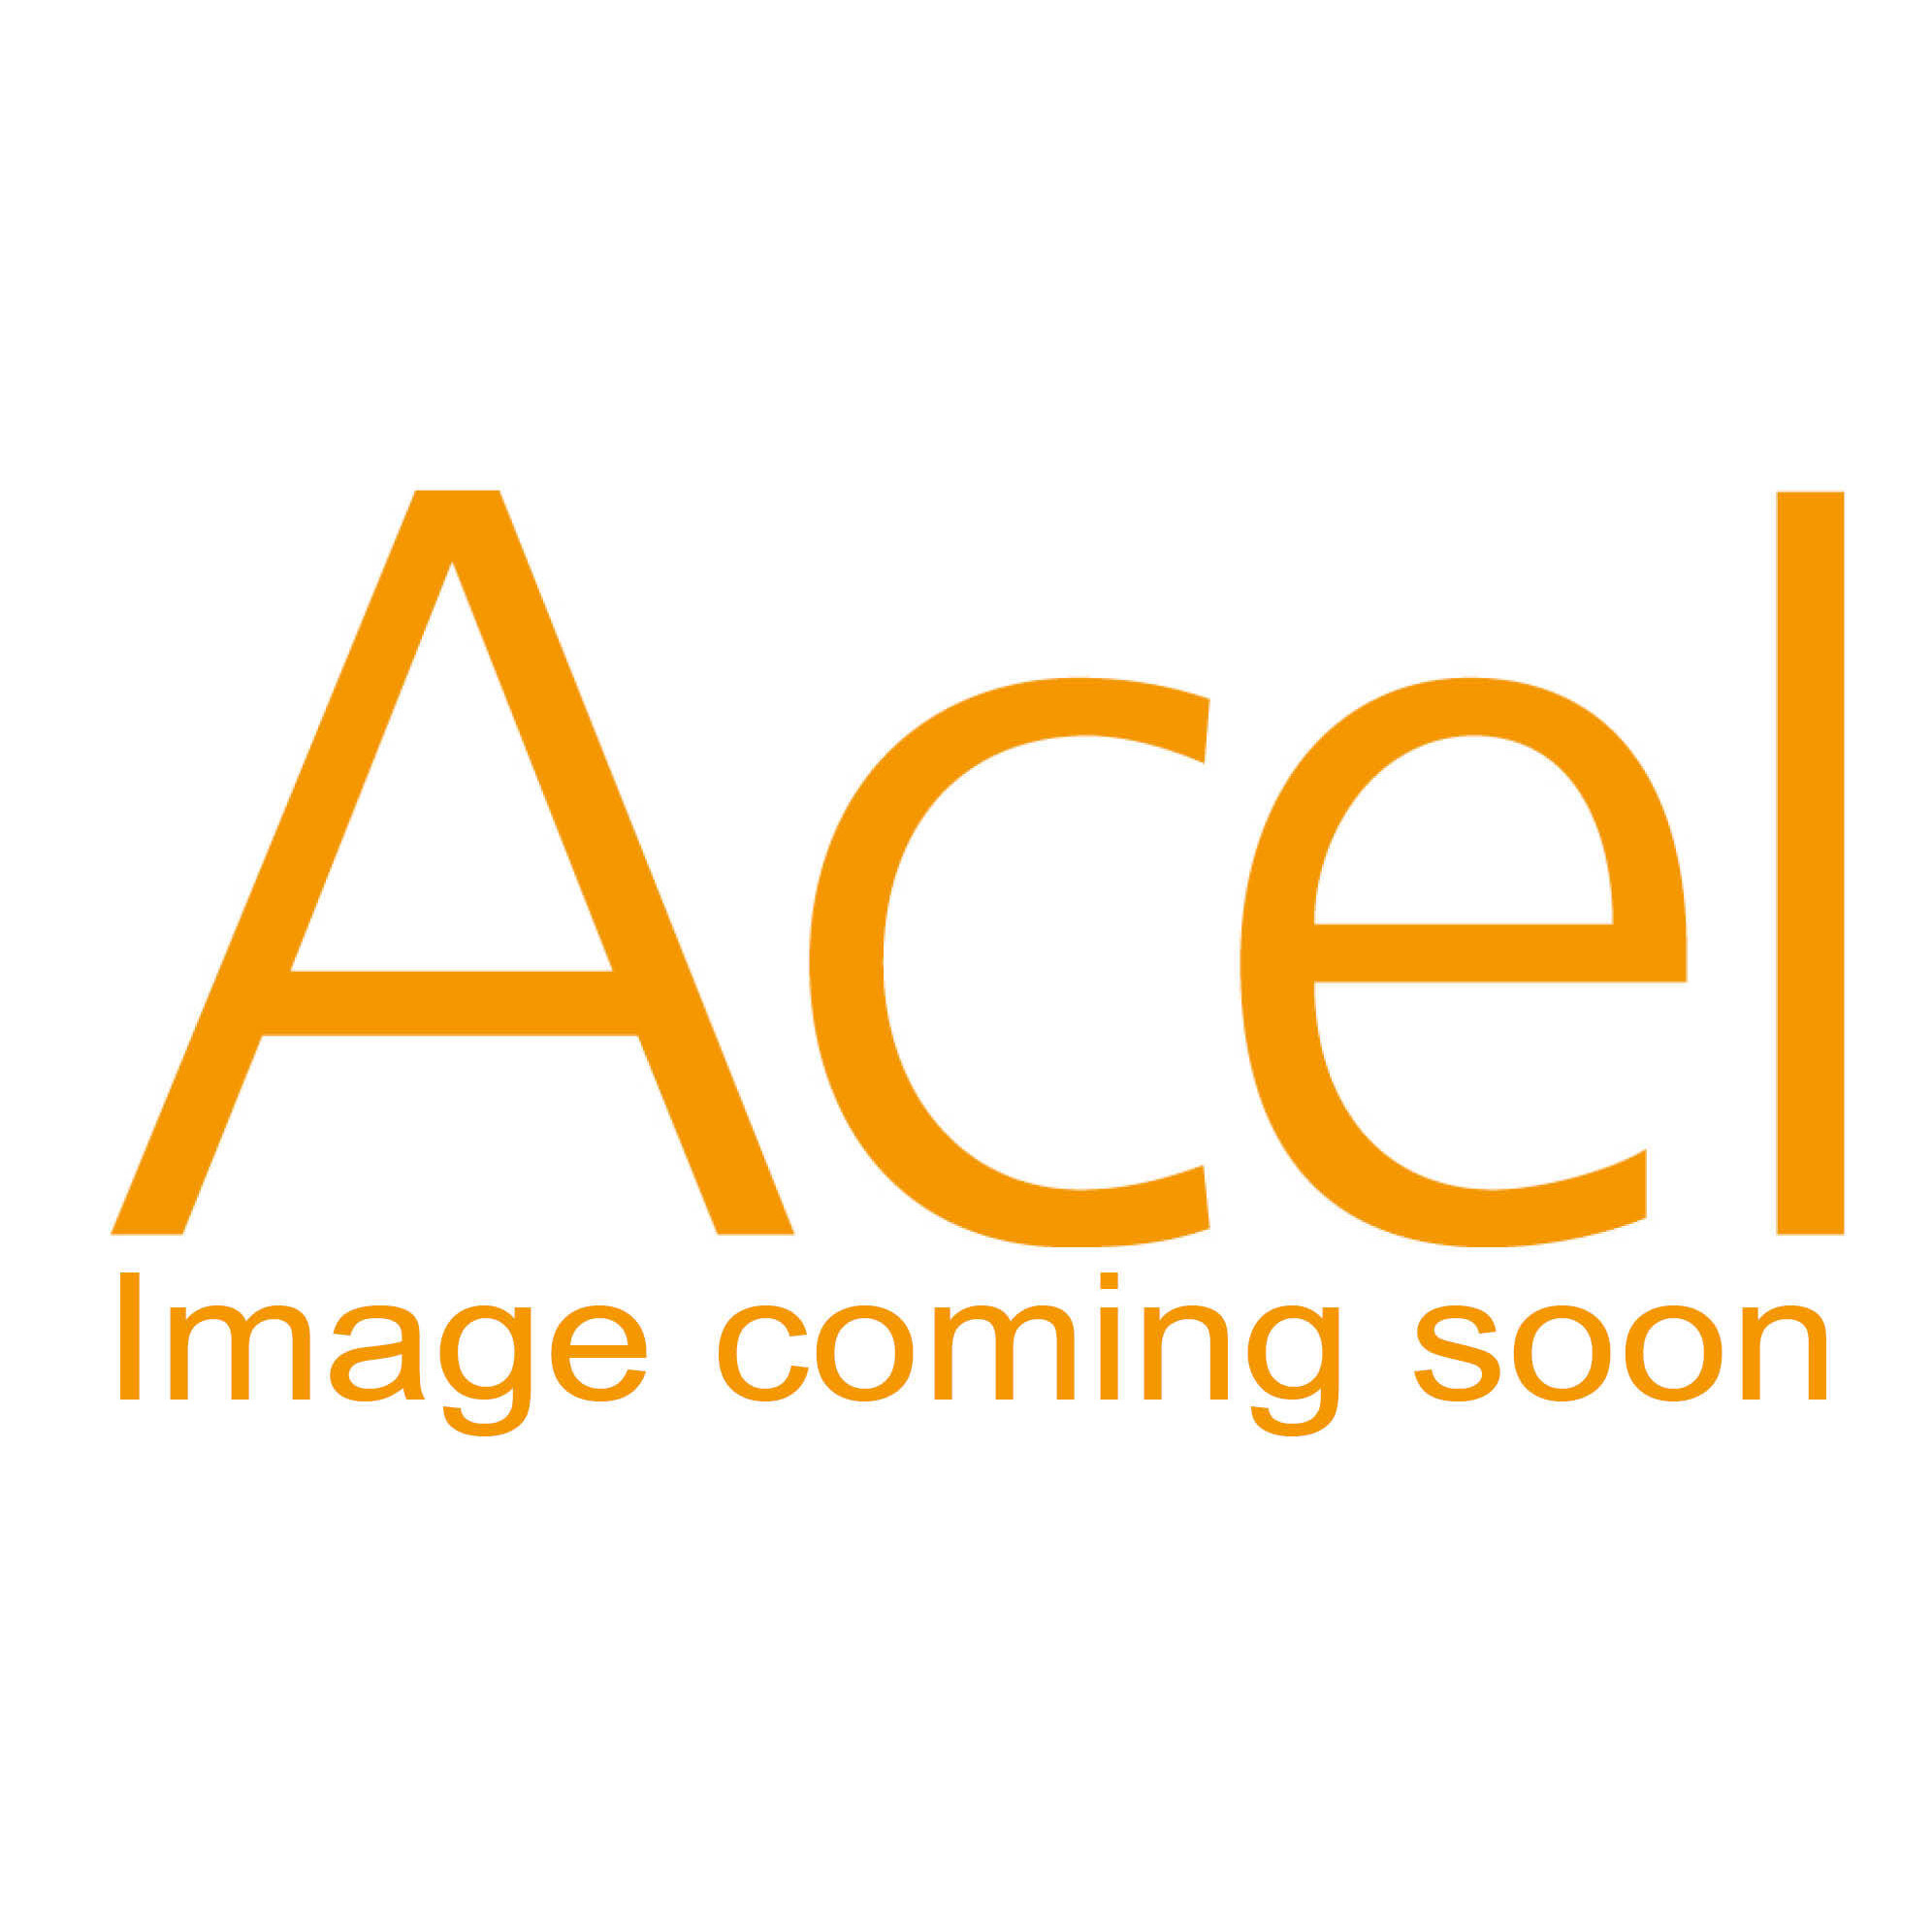 Rigid Self Adhesive PVC Labels - Do not switch on electrician working - 150 x 225mm Pk1